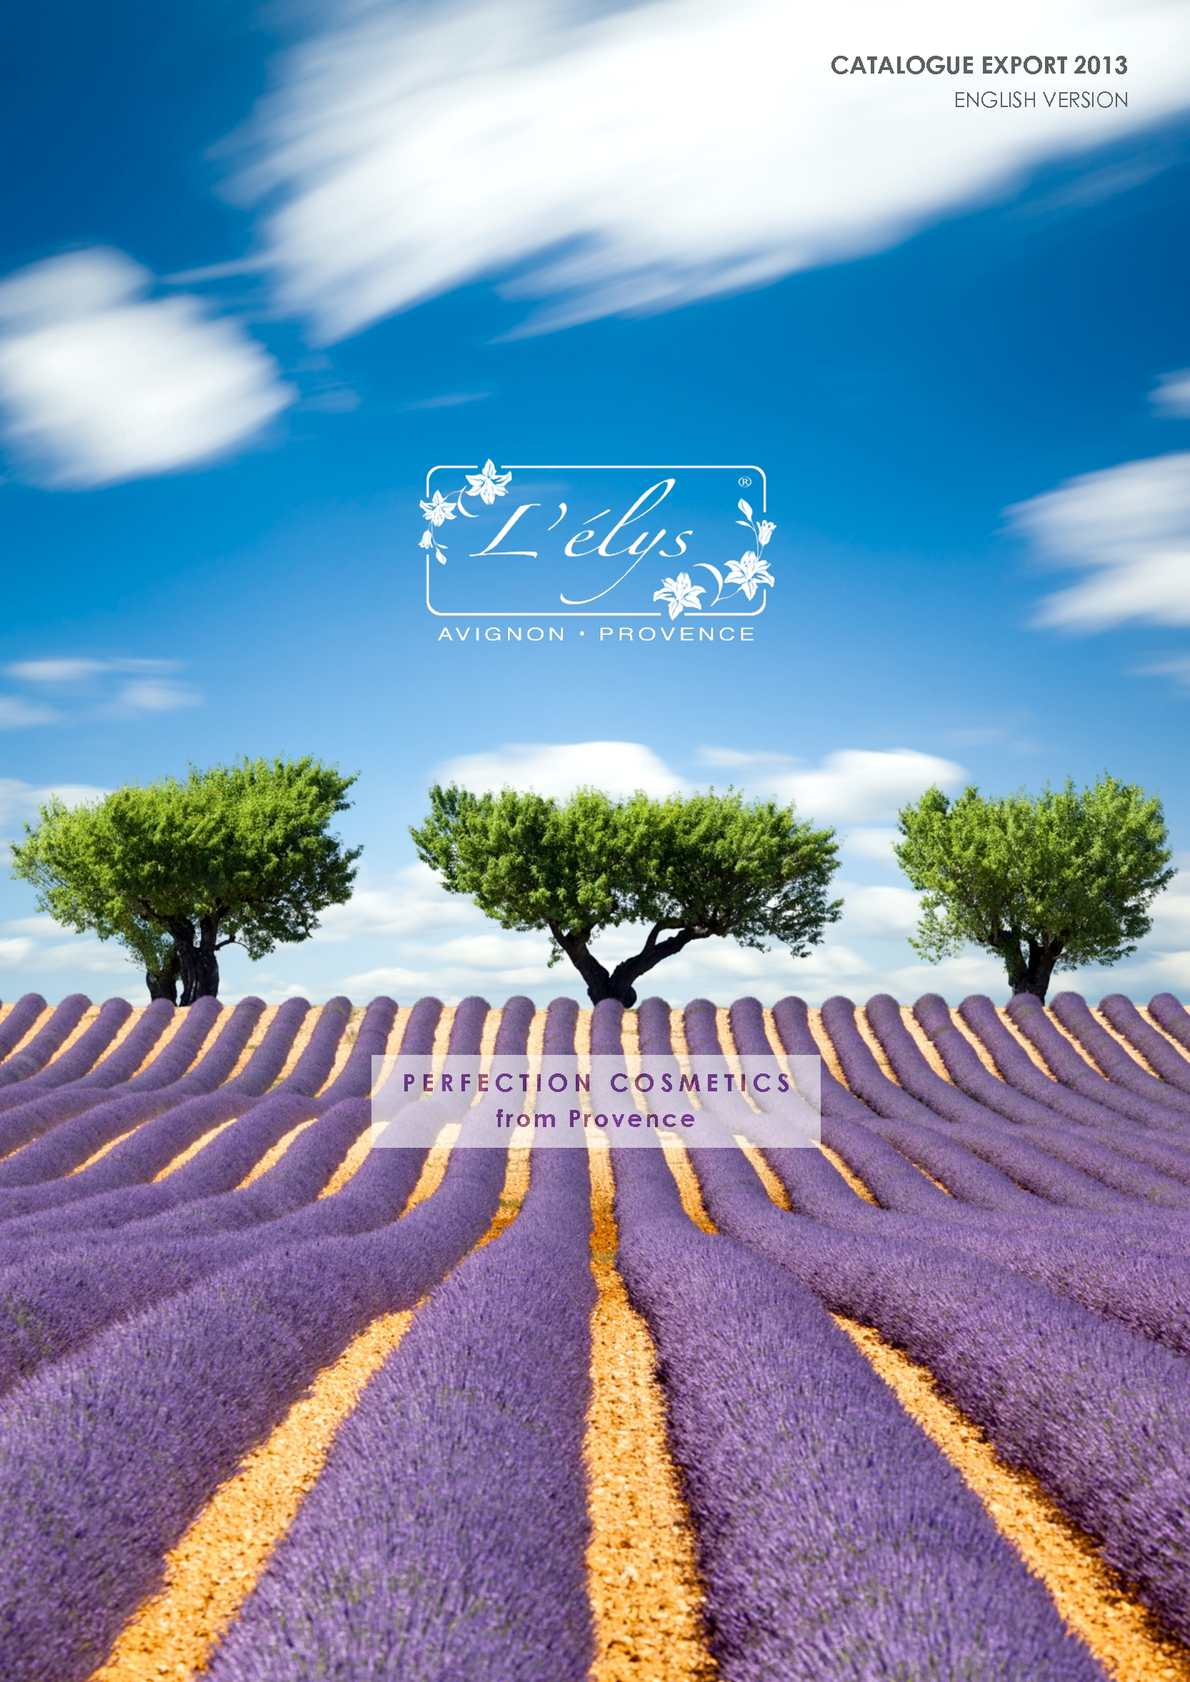 Catalogue L'ELYS EXPORT (PERFECTION COSMETICS FROM PROVENCE)